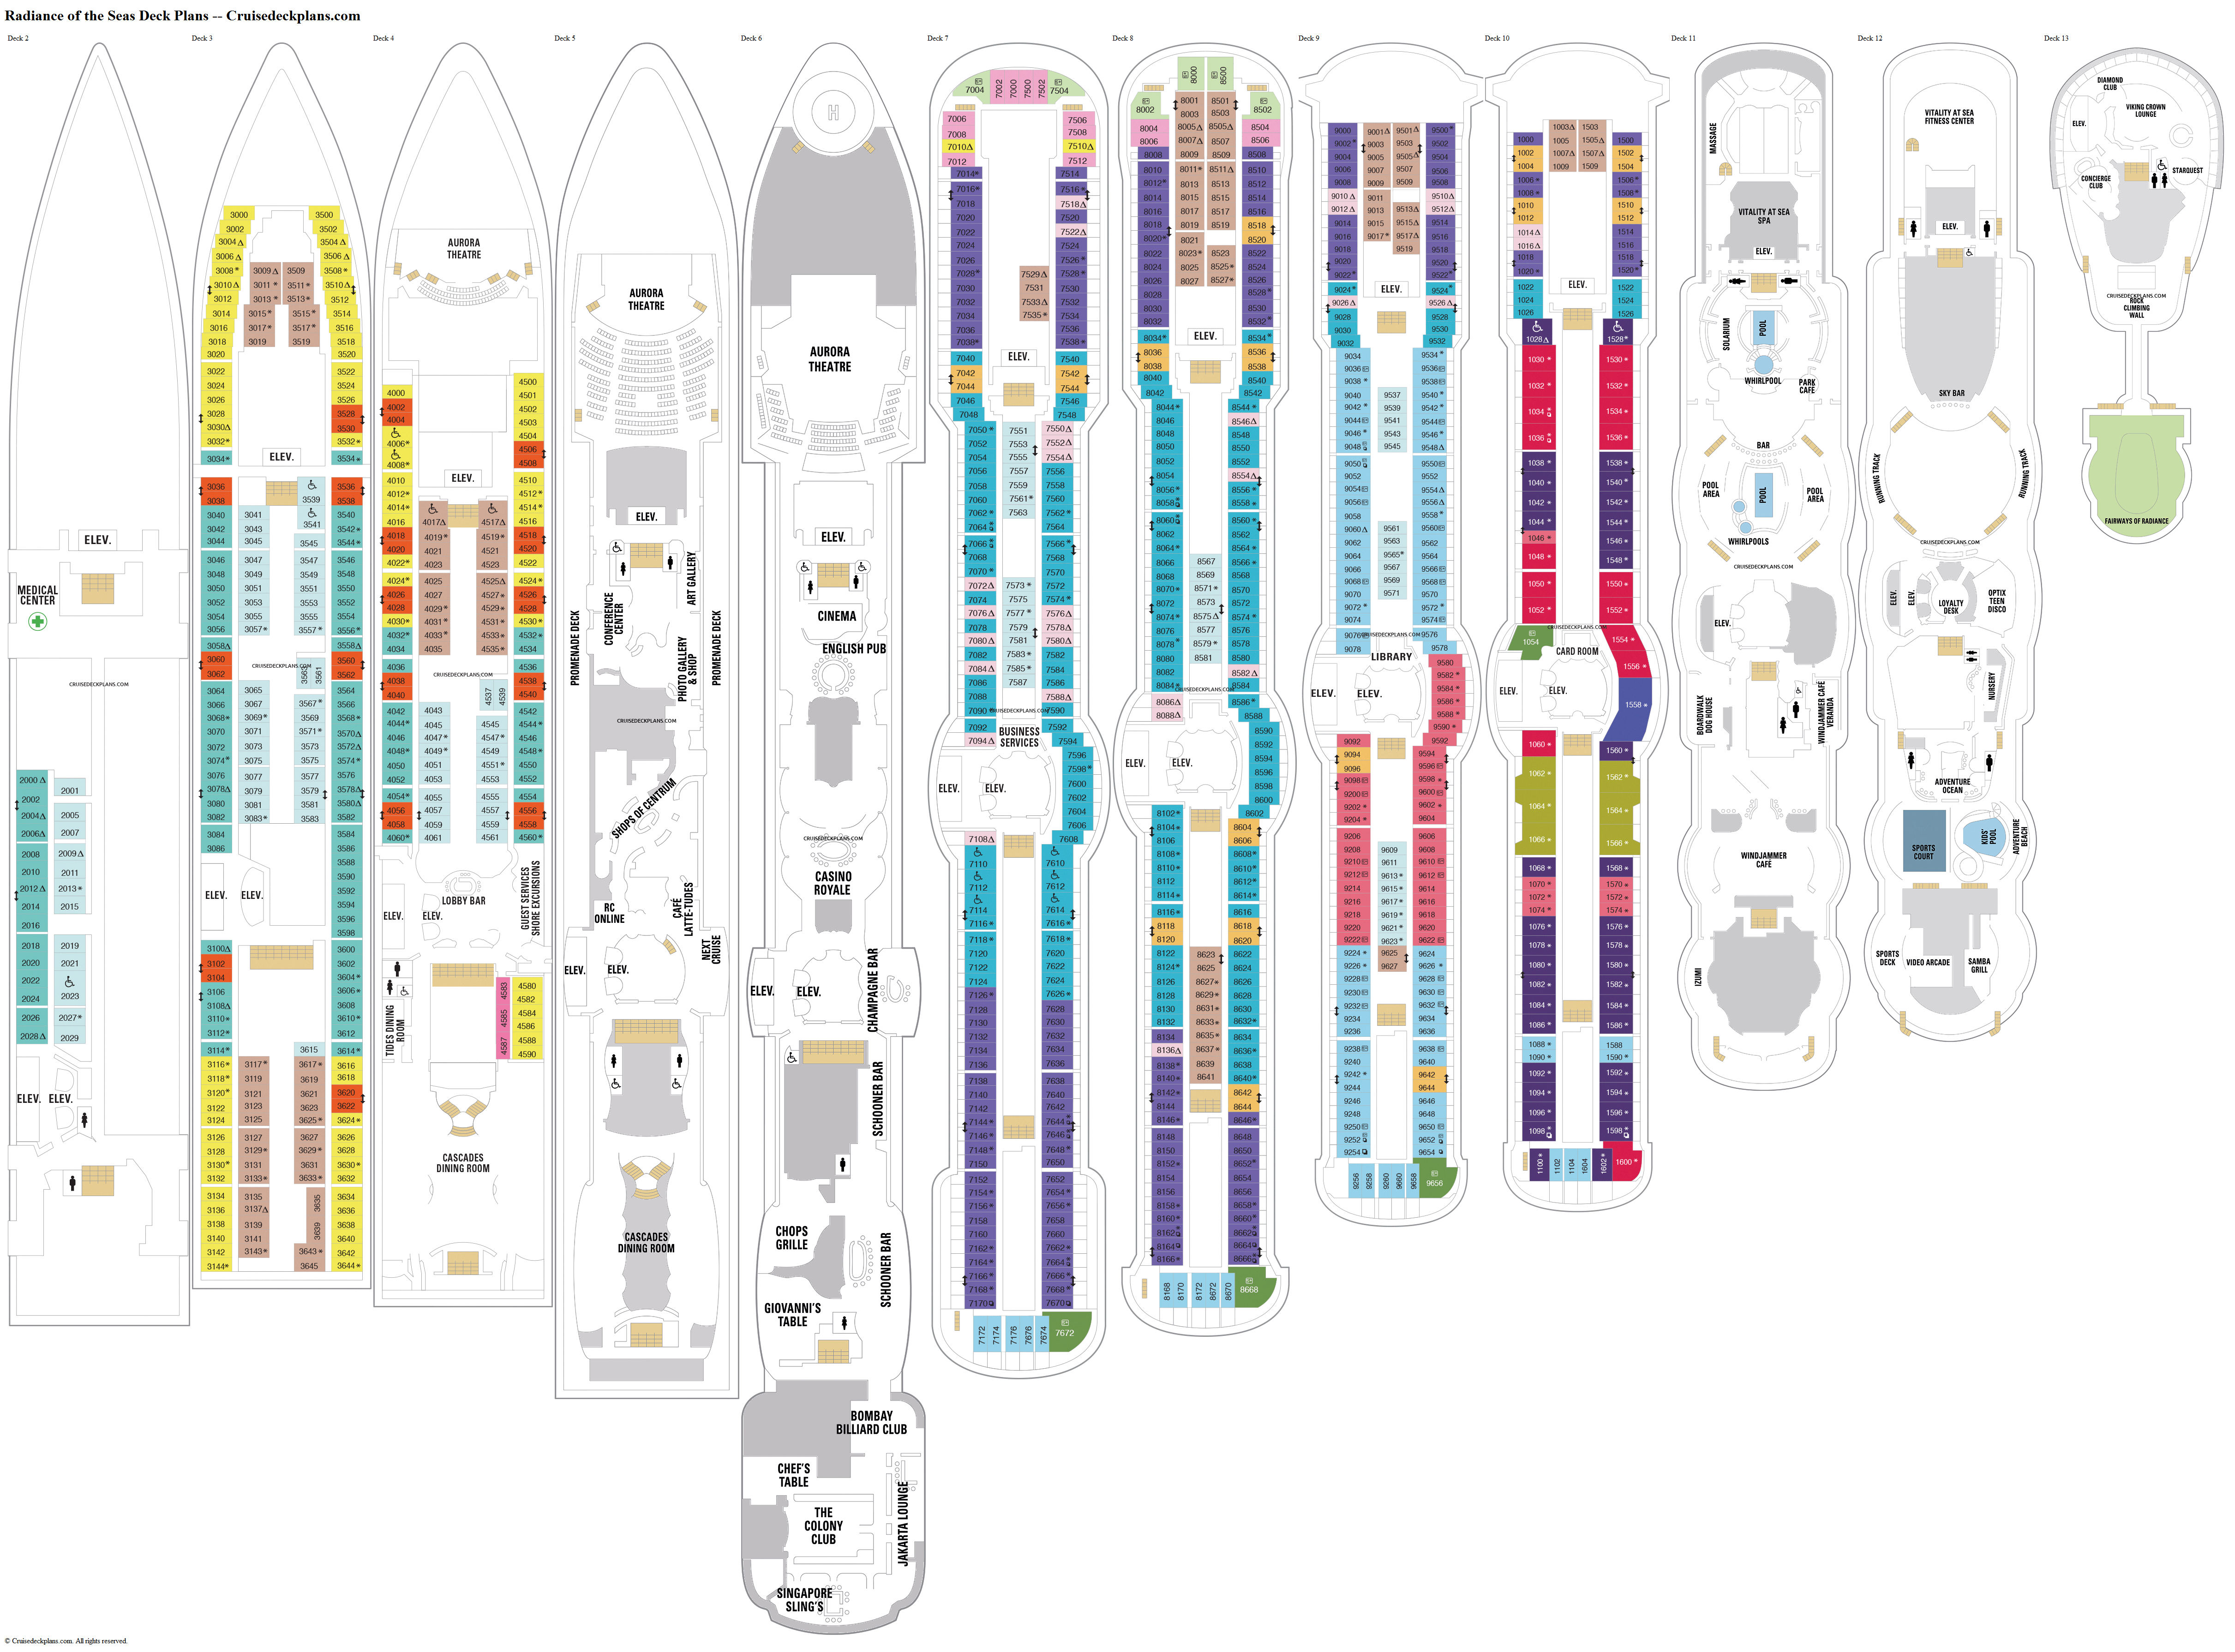 Radiance of the Seas deck plans image